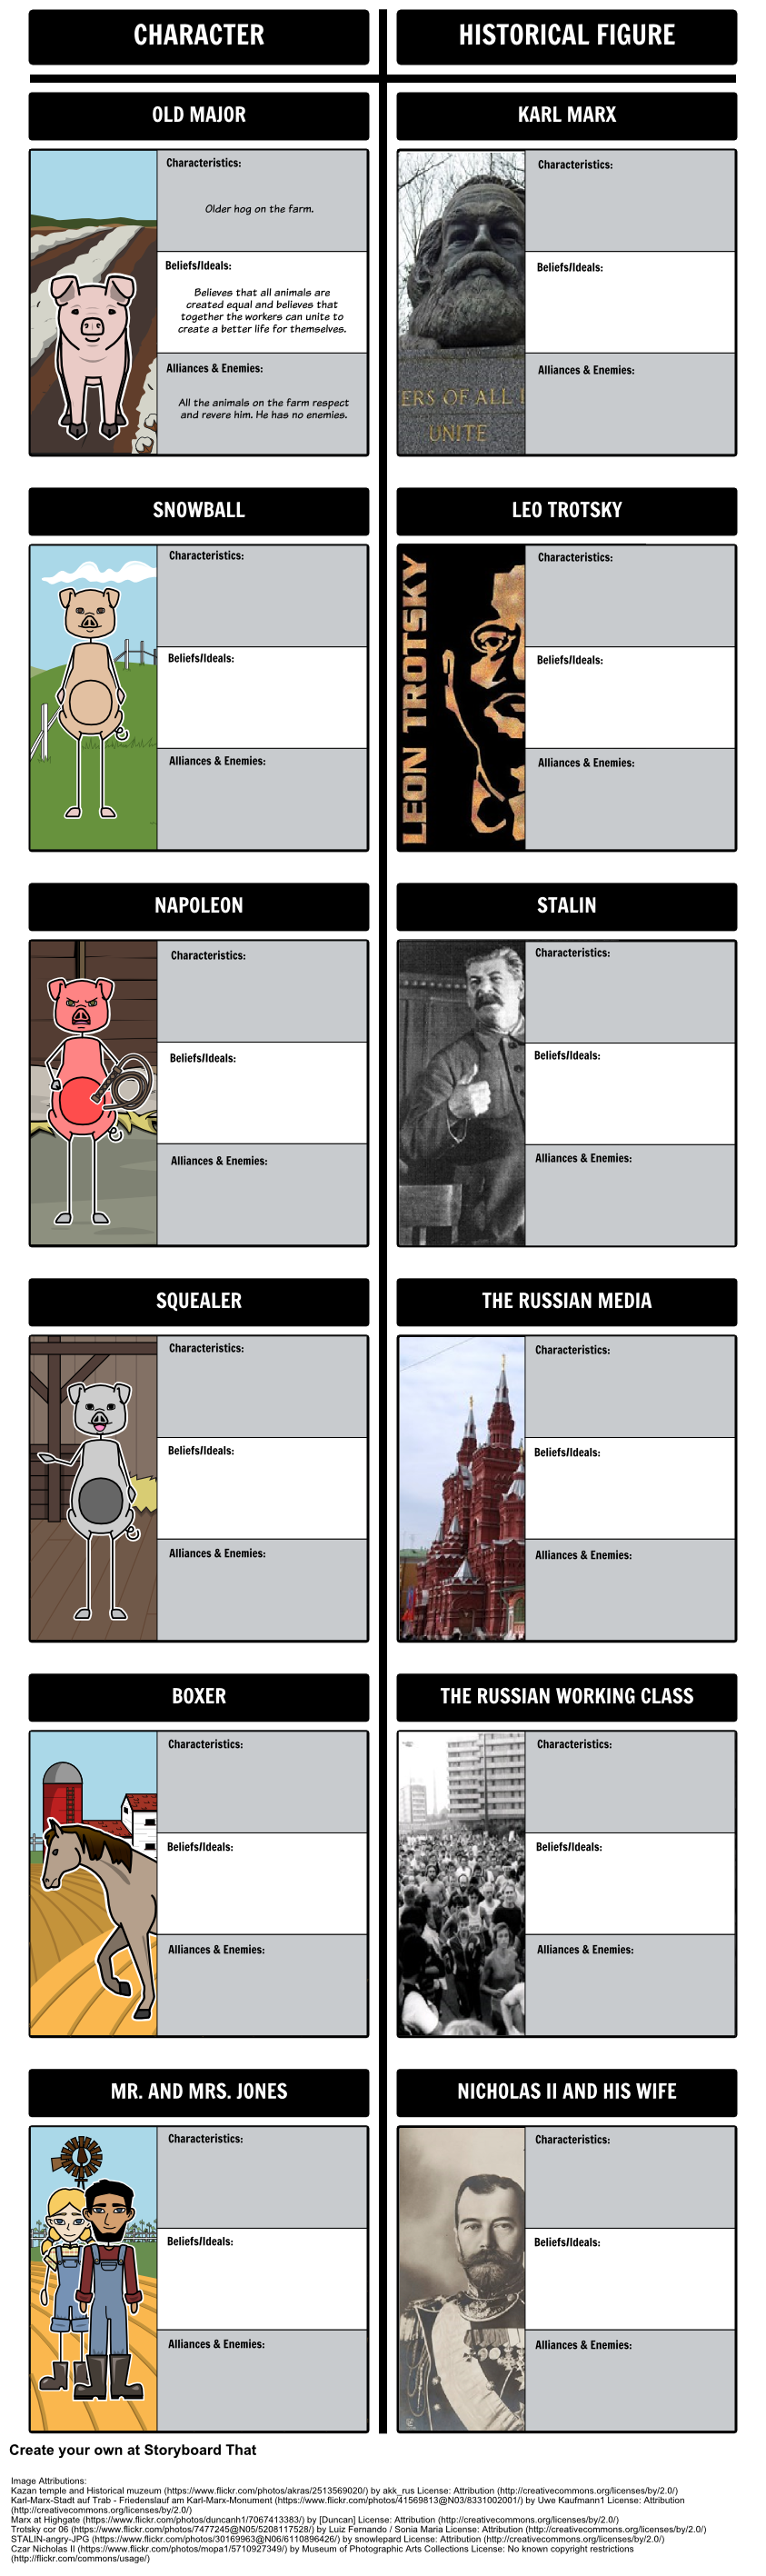 Animal Farm Allegory Comparison Chart